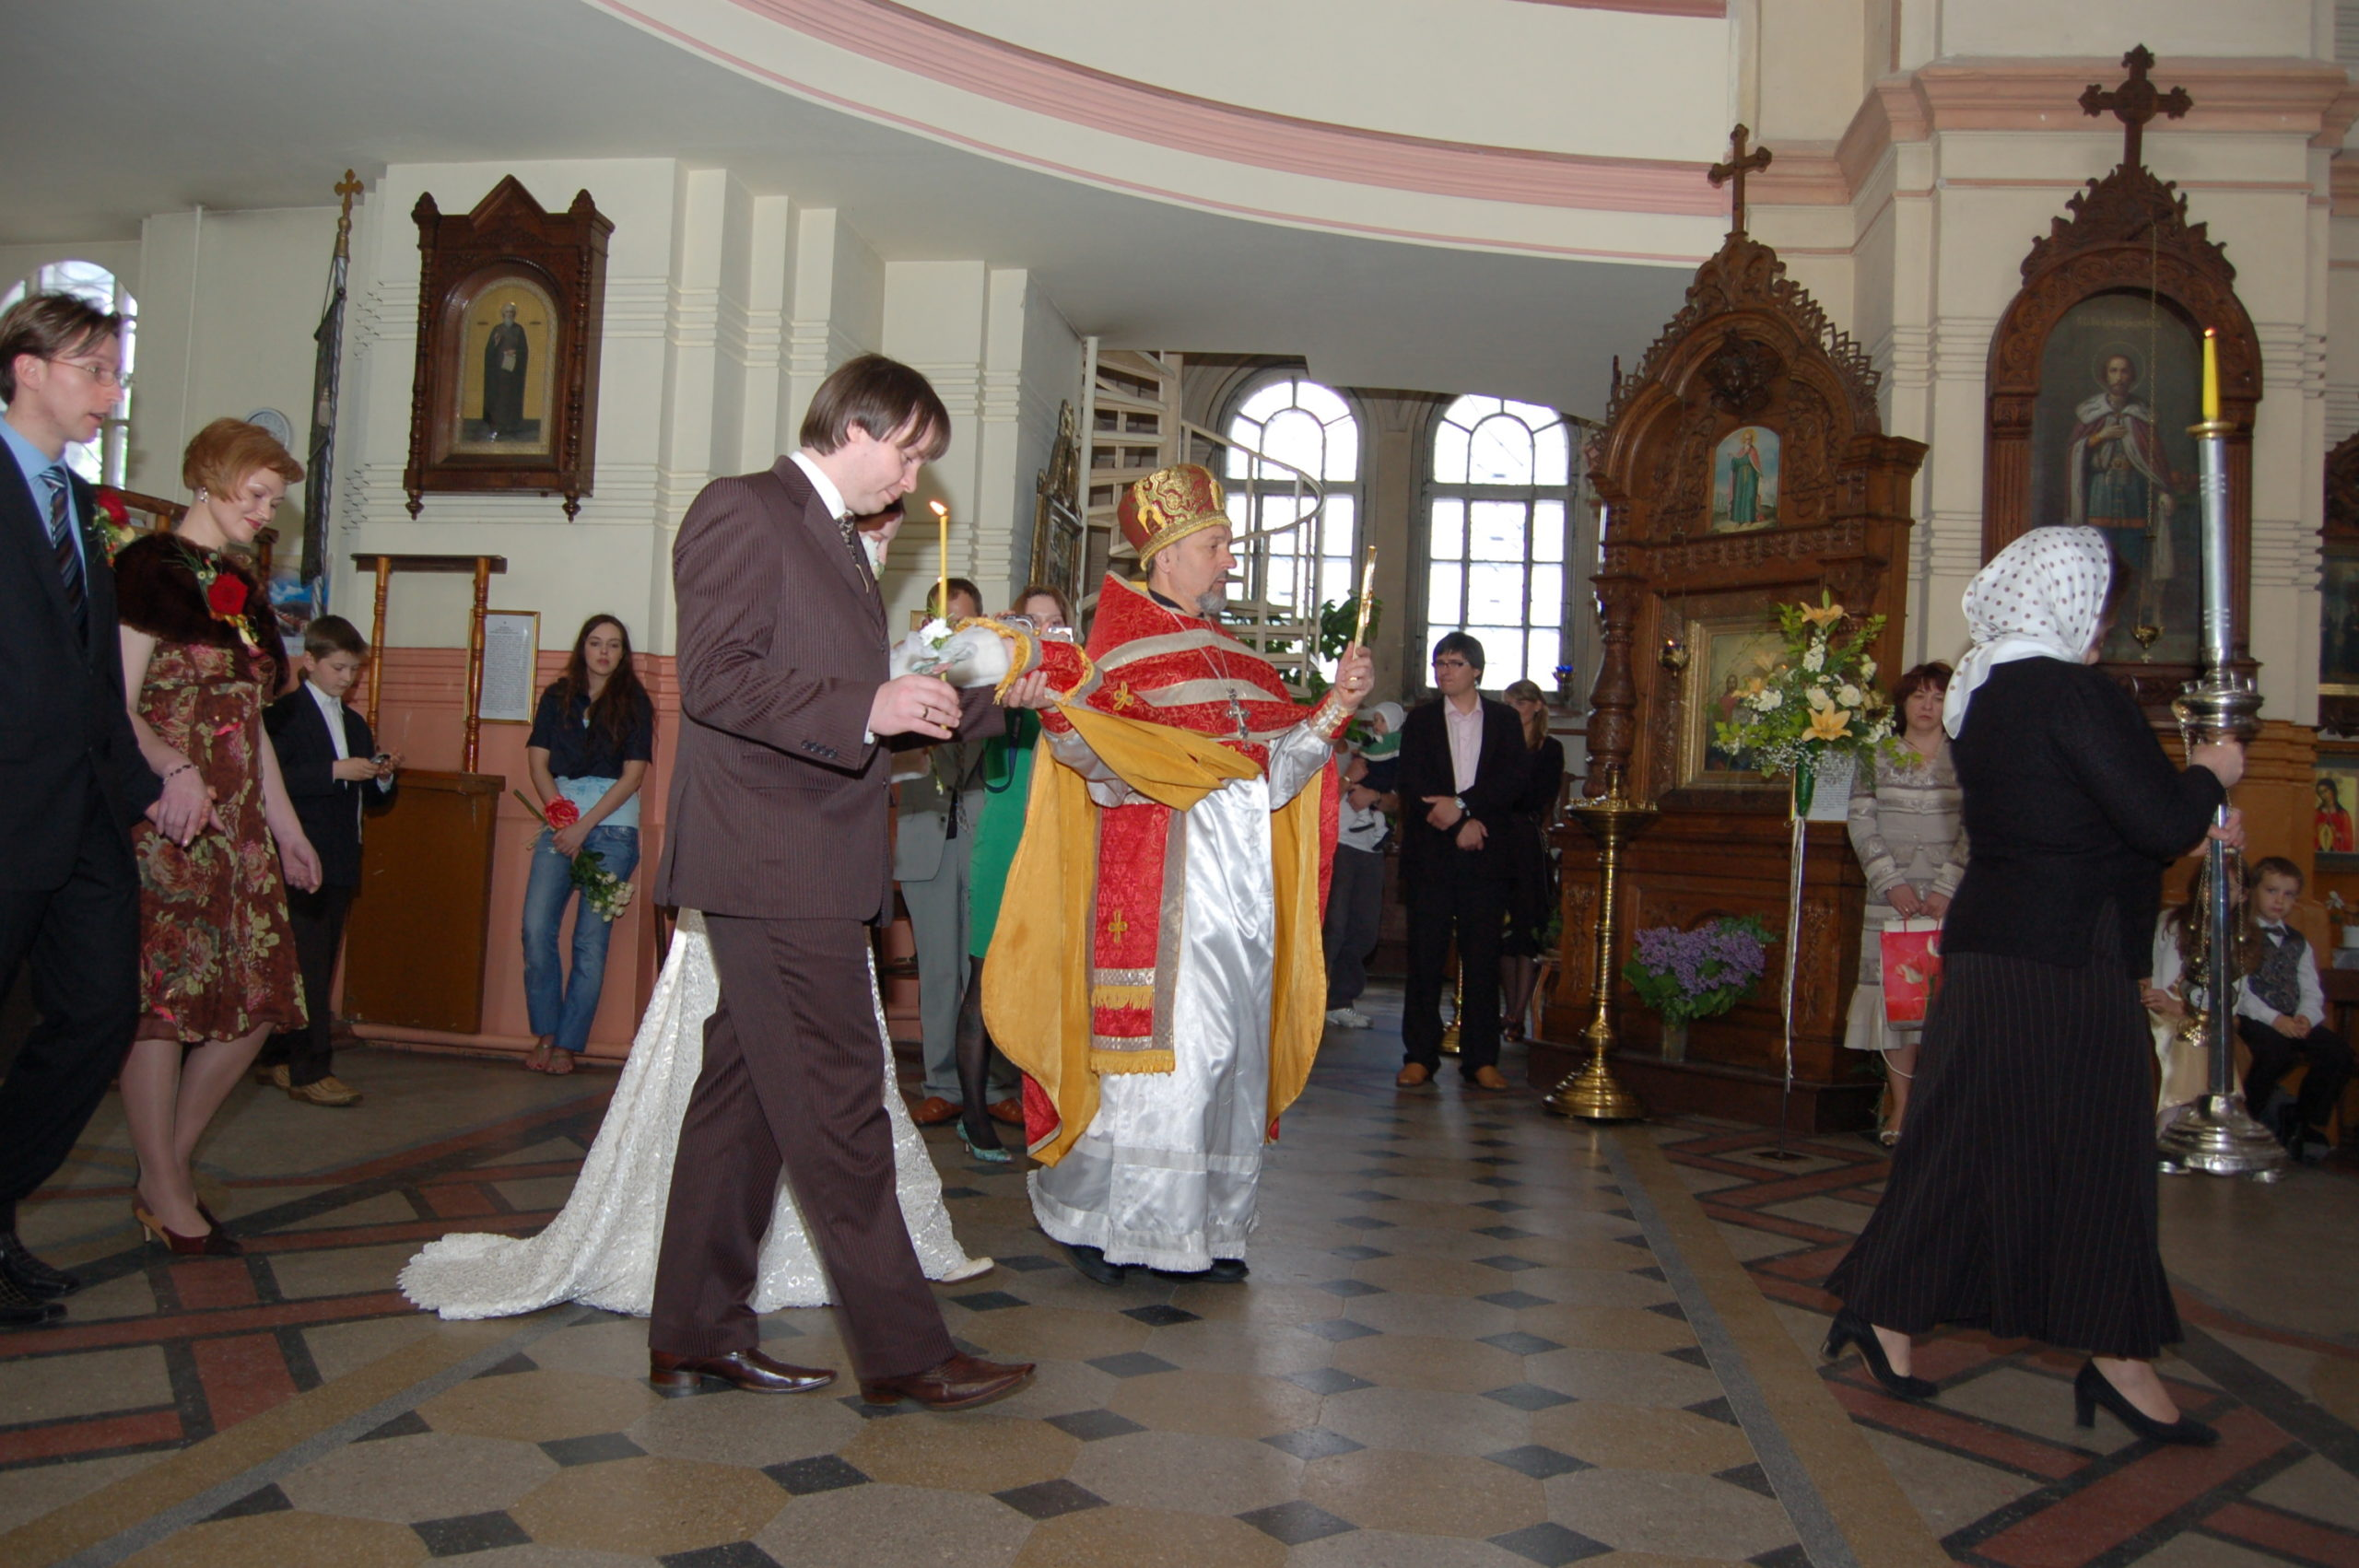 Priest leads the bride and groom towards the altar